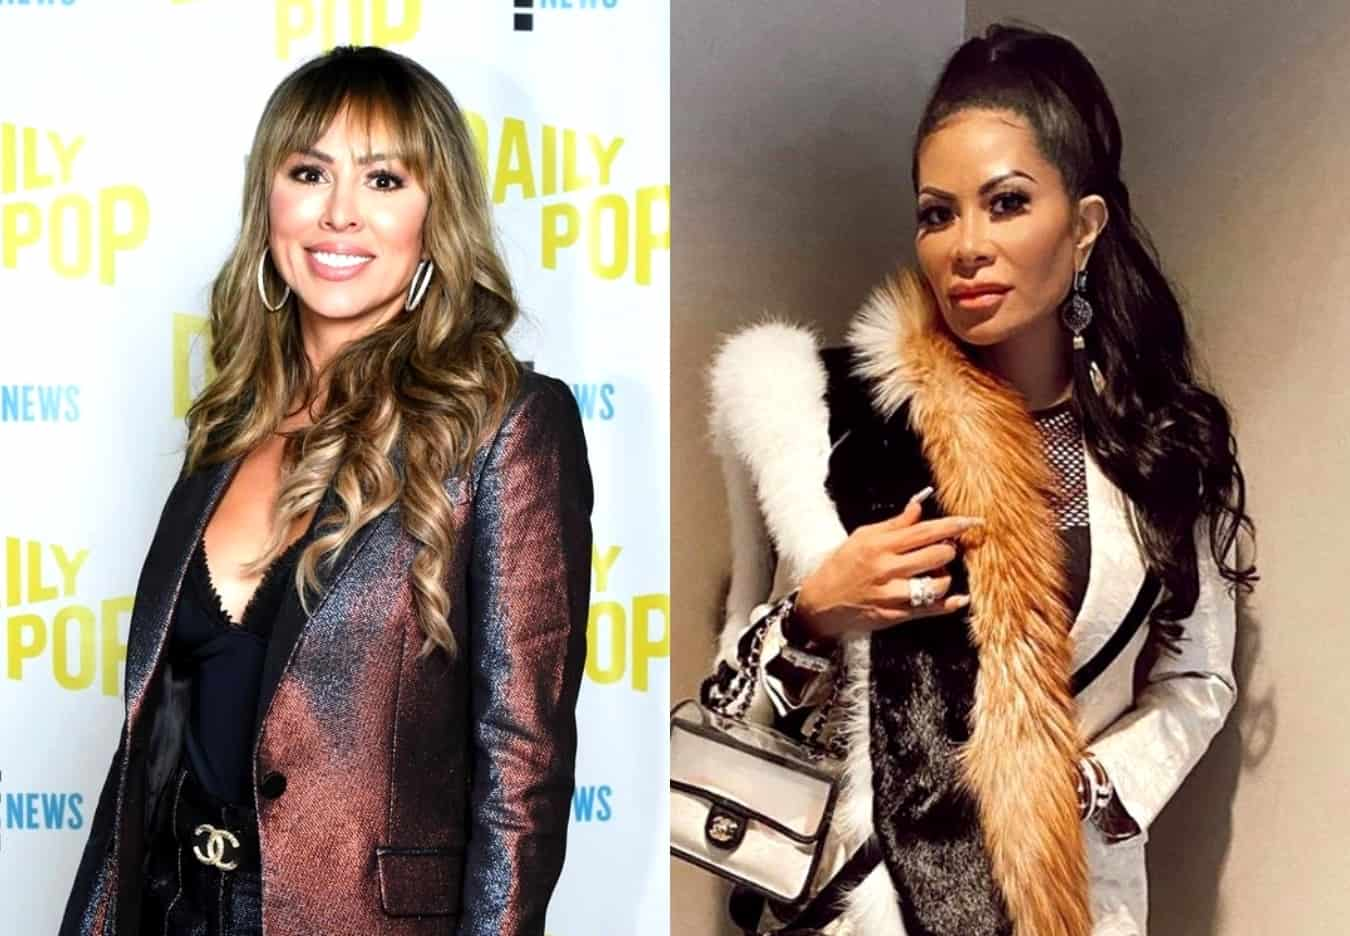 RHOC Star Kelly Dodd Fires Back at Jen Shah For Labeling Her as Her Least Favorite Housewife, Plus Jen Reacts to Fans Who Mentions Kelly's Controversial Past Statements, and RHOC Live Viewing Thread